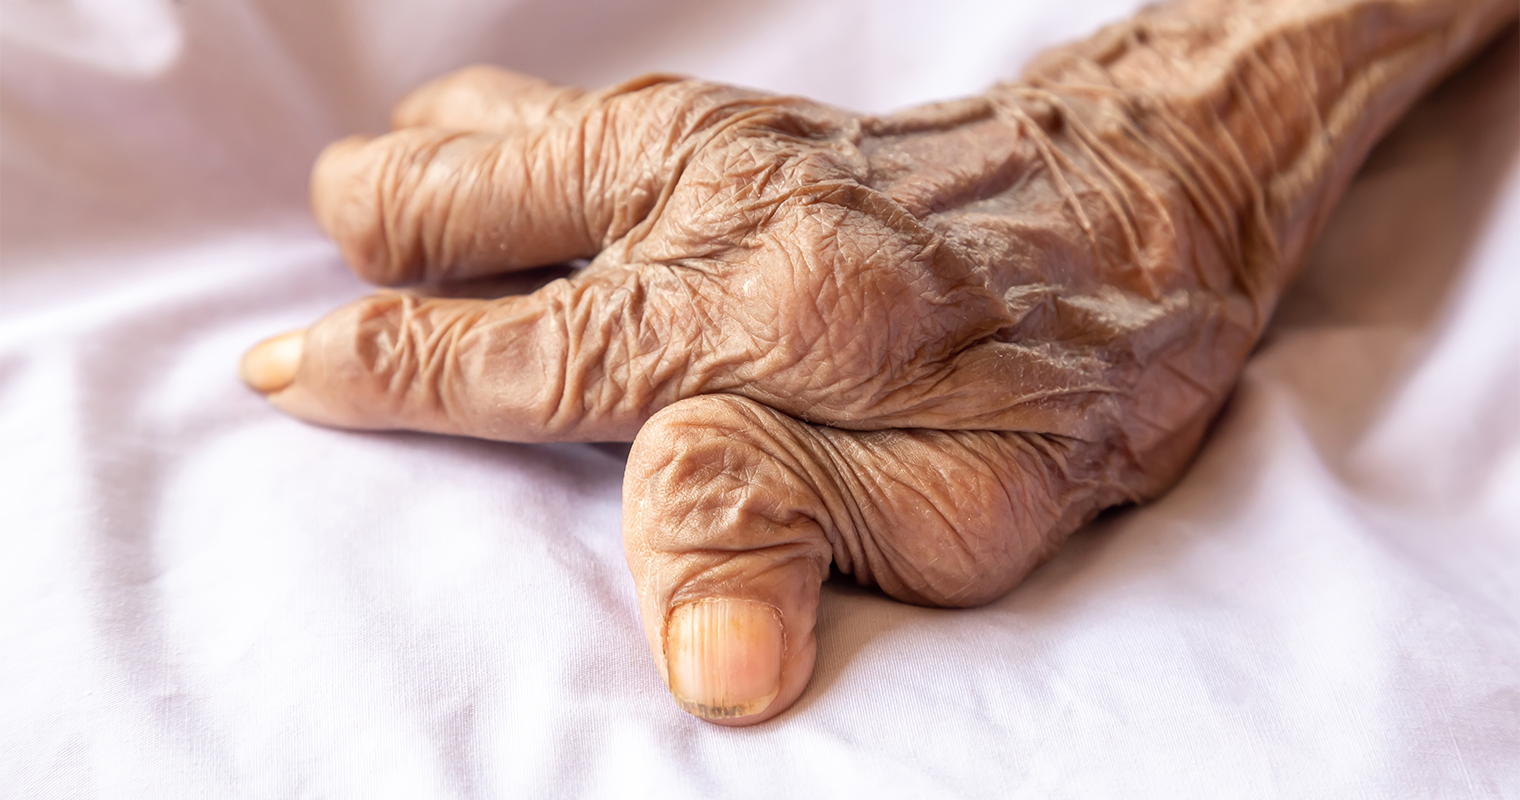 fingers of woman with rheumatoid arthritis